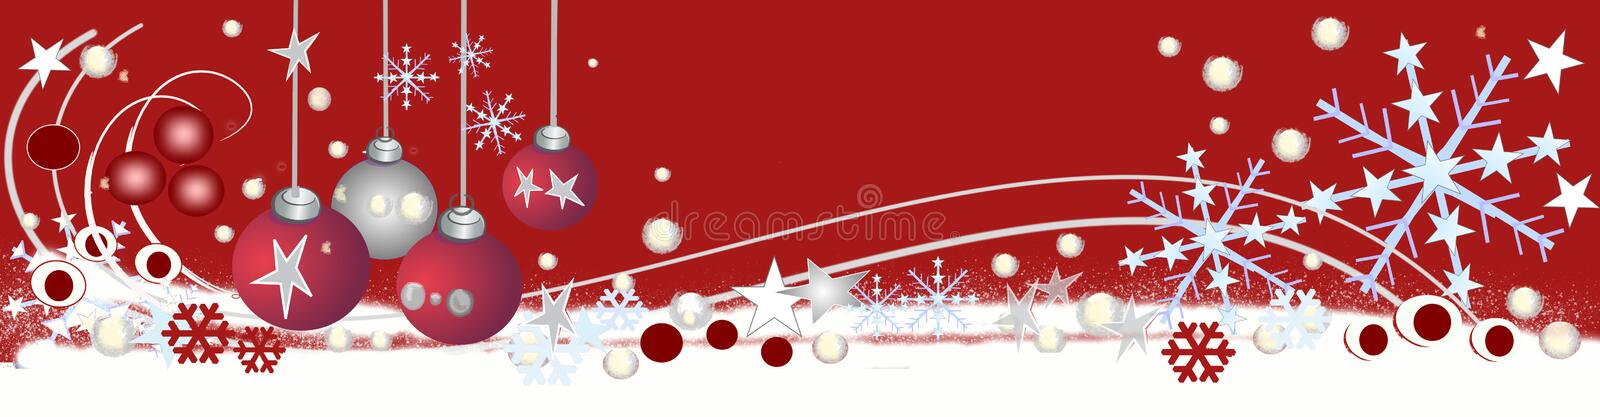 Decorative christmas header. A decorative red christmas header / banner with snowflakes, stars and baubles stock illustration